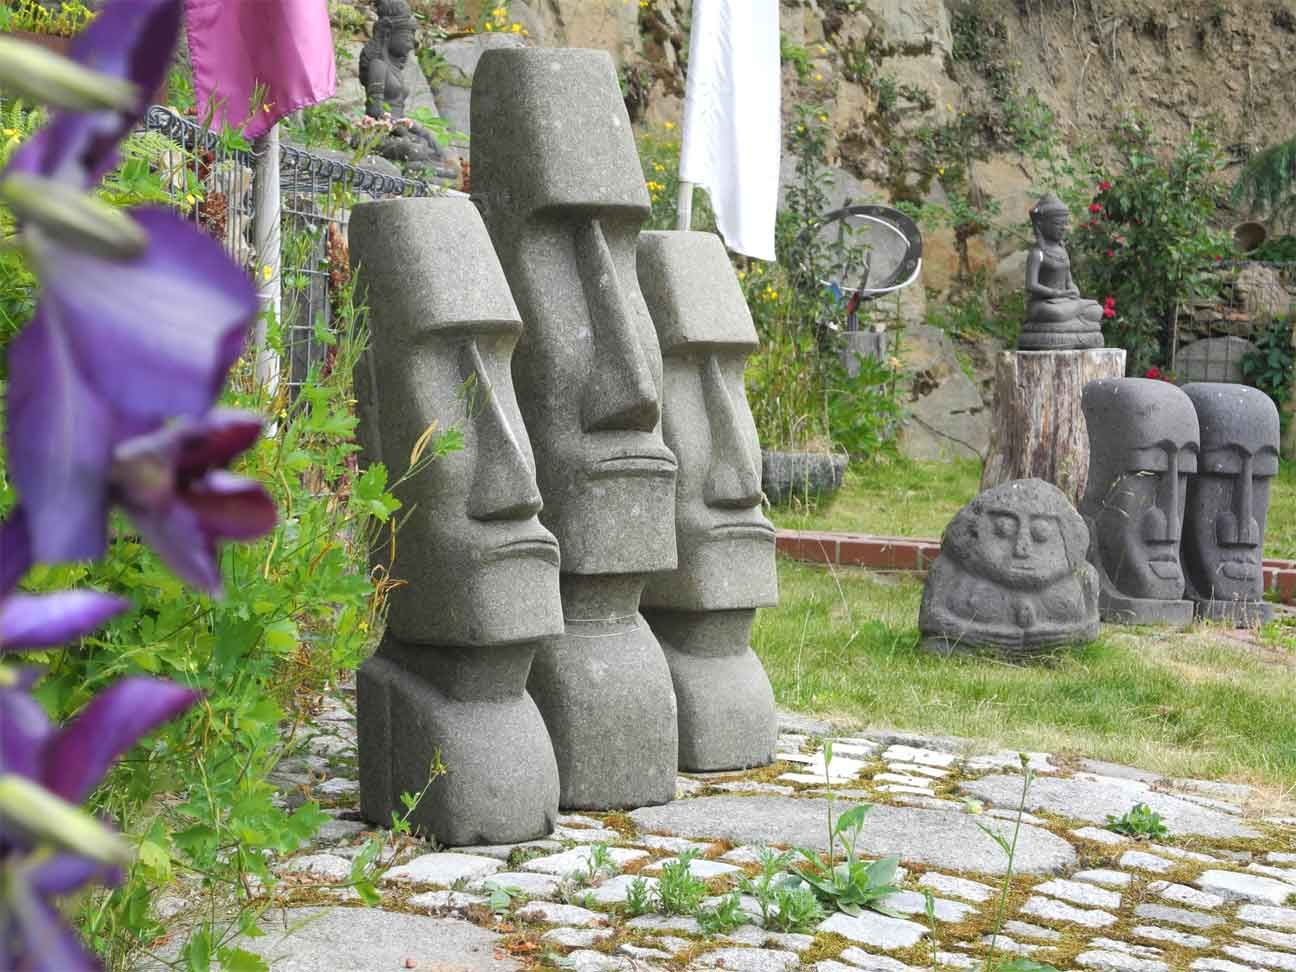 bildergebnis f r skulptur garten modern gartenskulptur pinterest skulpturen garten. Black Bedroom Furniture Sets. Home Design Ideas